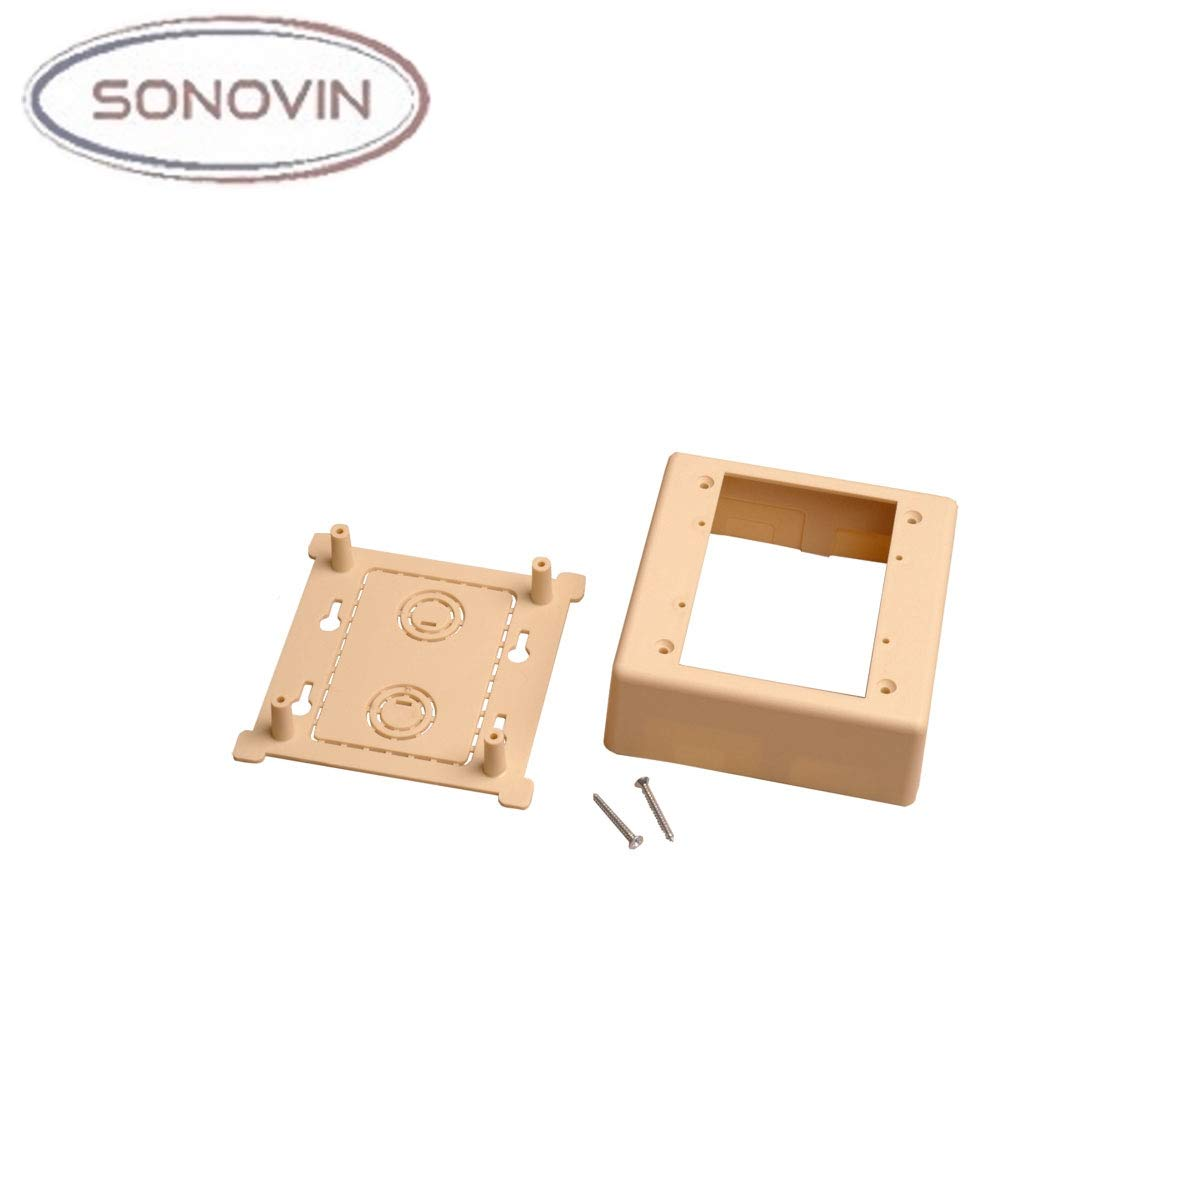 Ivory Color:Ivory Low Voltage Sonovin Dual Gang Surface Mount Box for Raceways